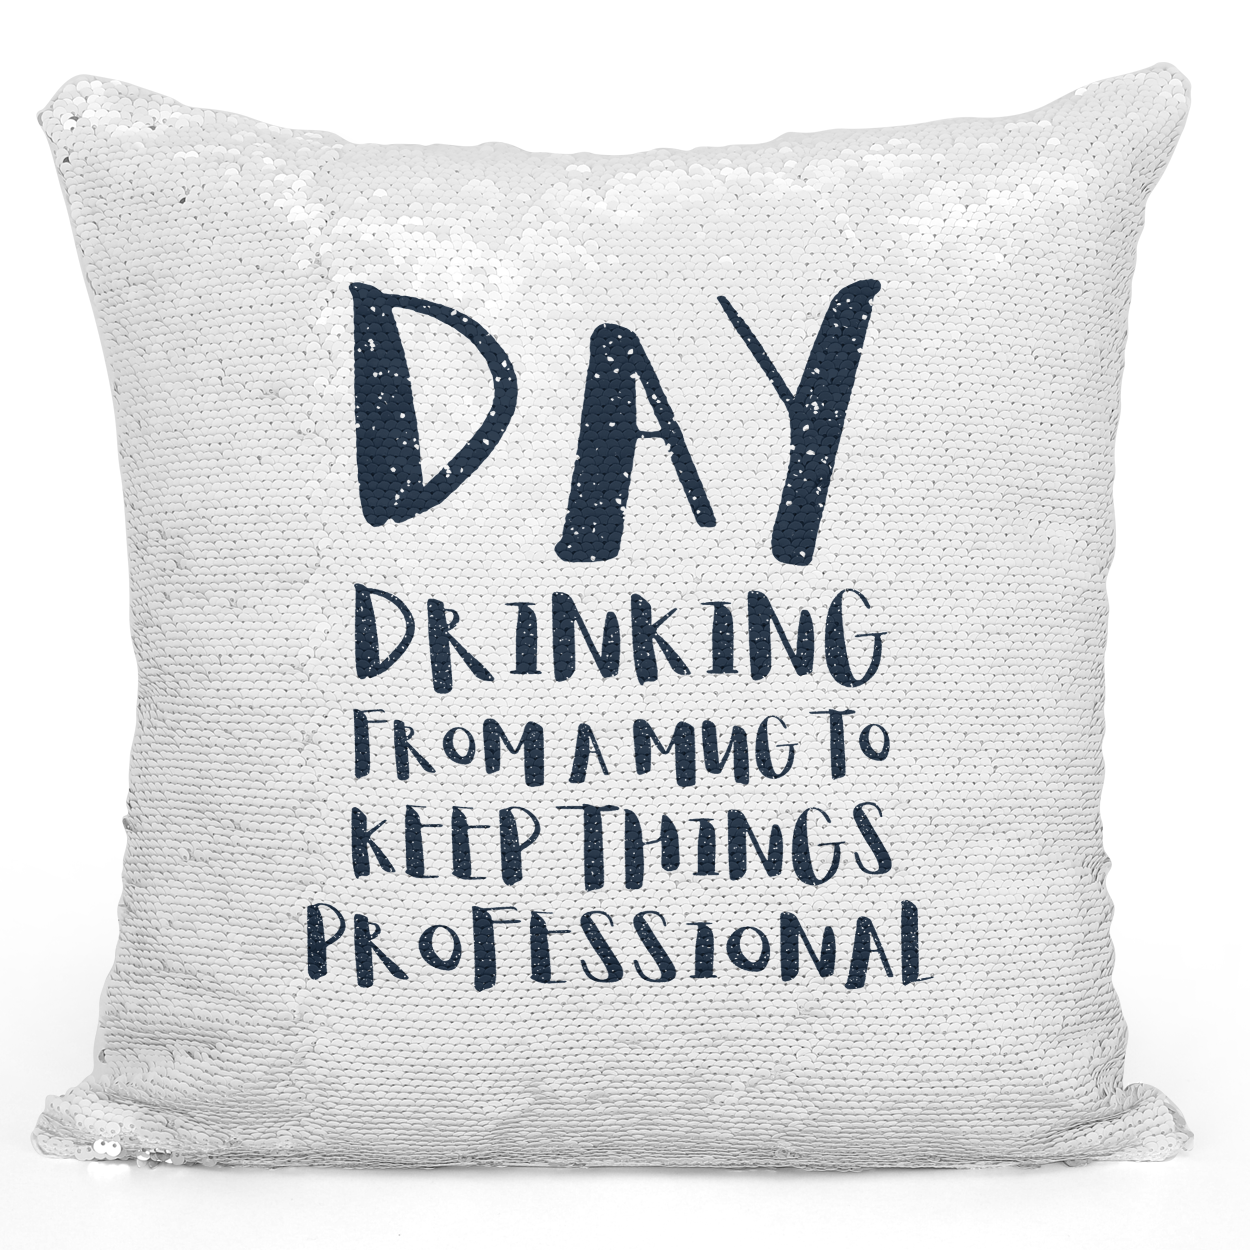 16x16 inch Sequin Throw Pillow Magic Flip Pillow Drinking From The Mug To Keep It Professional Funny Drunk Alcoholic Quote Pillow Loud Universe